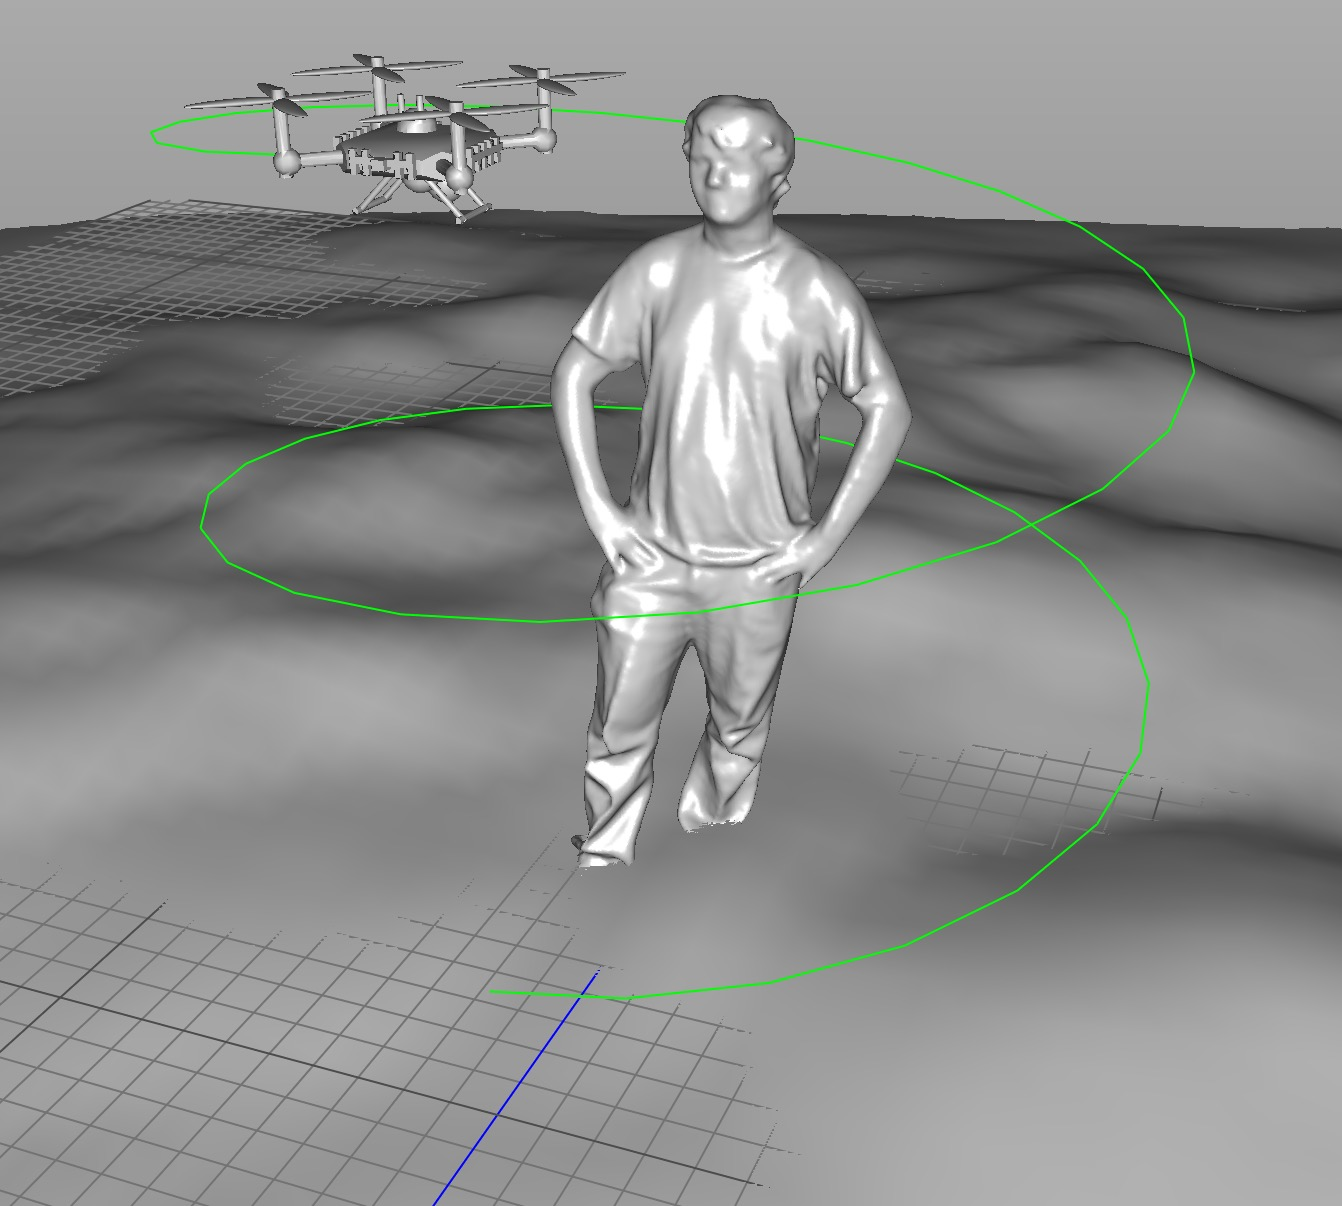 Could a drone perform a 3D scan on a human subject?